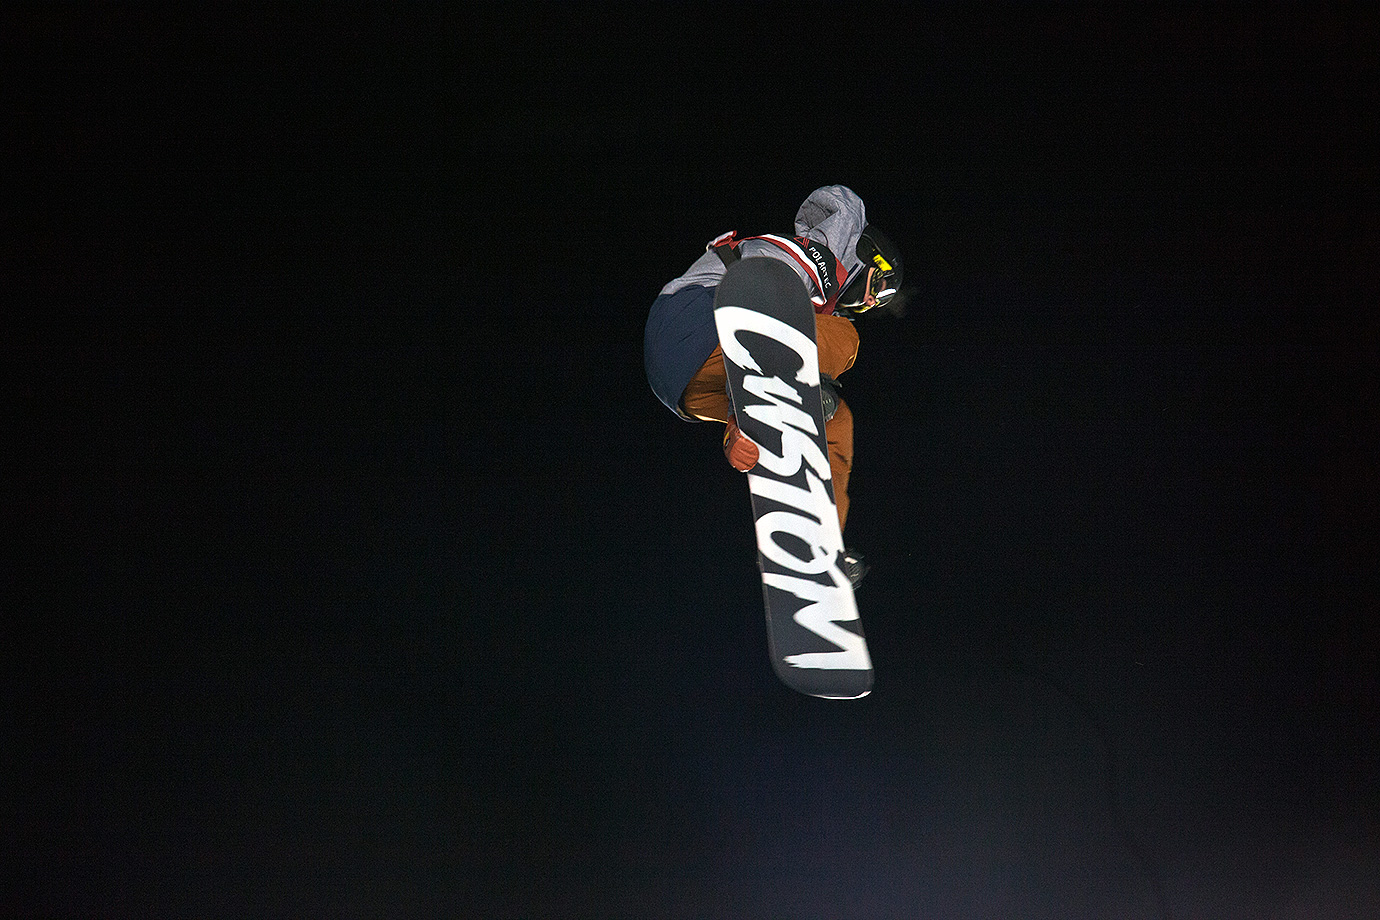 Silver medalist Michael Ciccarelli goes airborne during the second round of the snowboard Big Air competition.